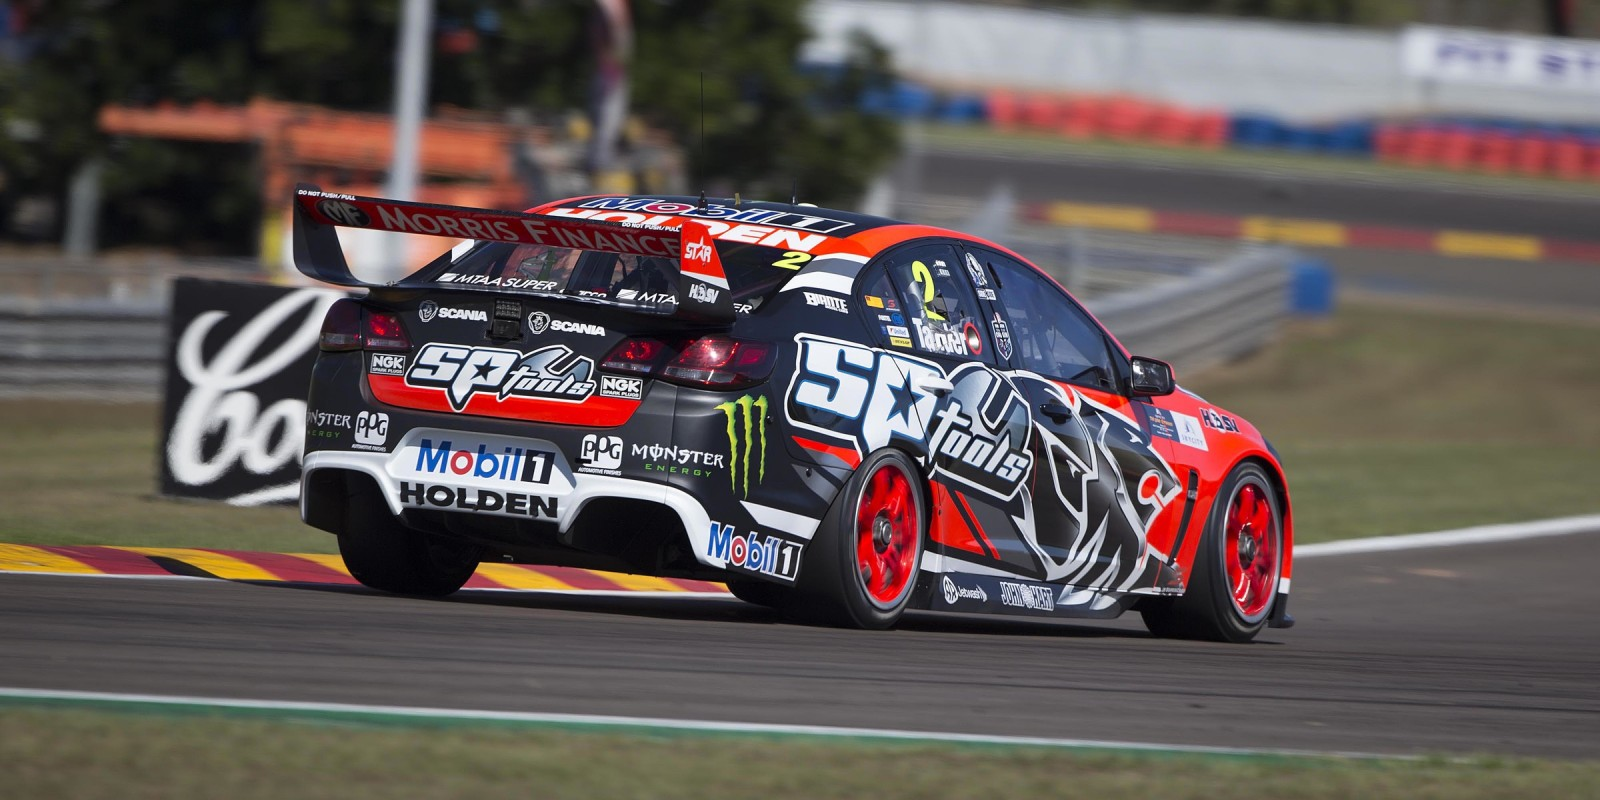 James Courtney at Round 5 of the V8 Supercar race in Darwin